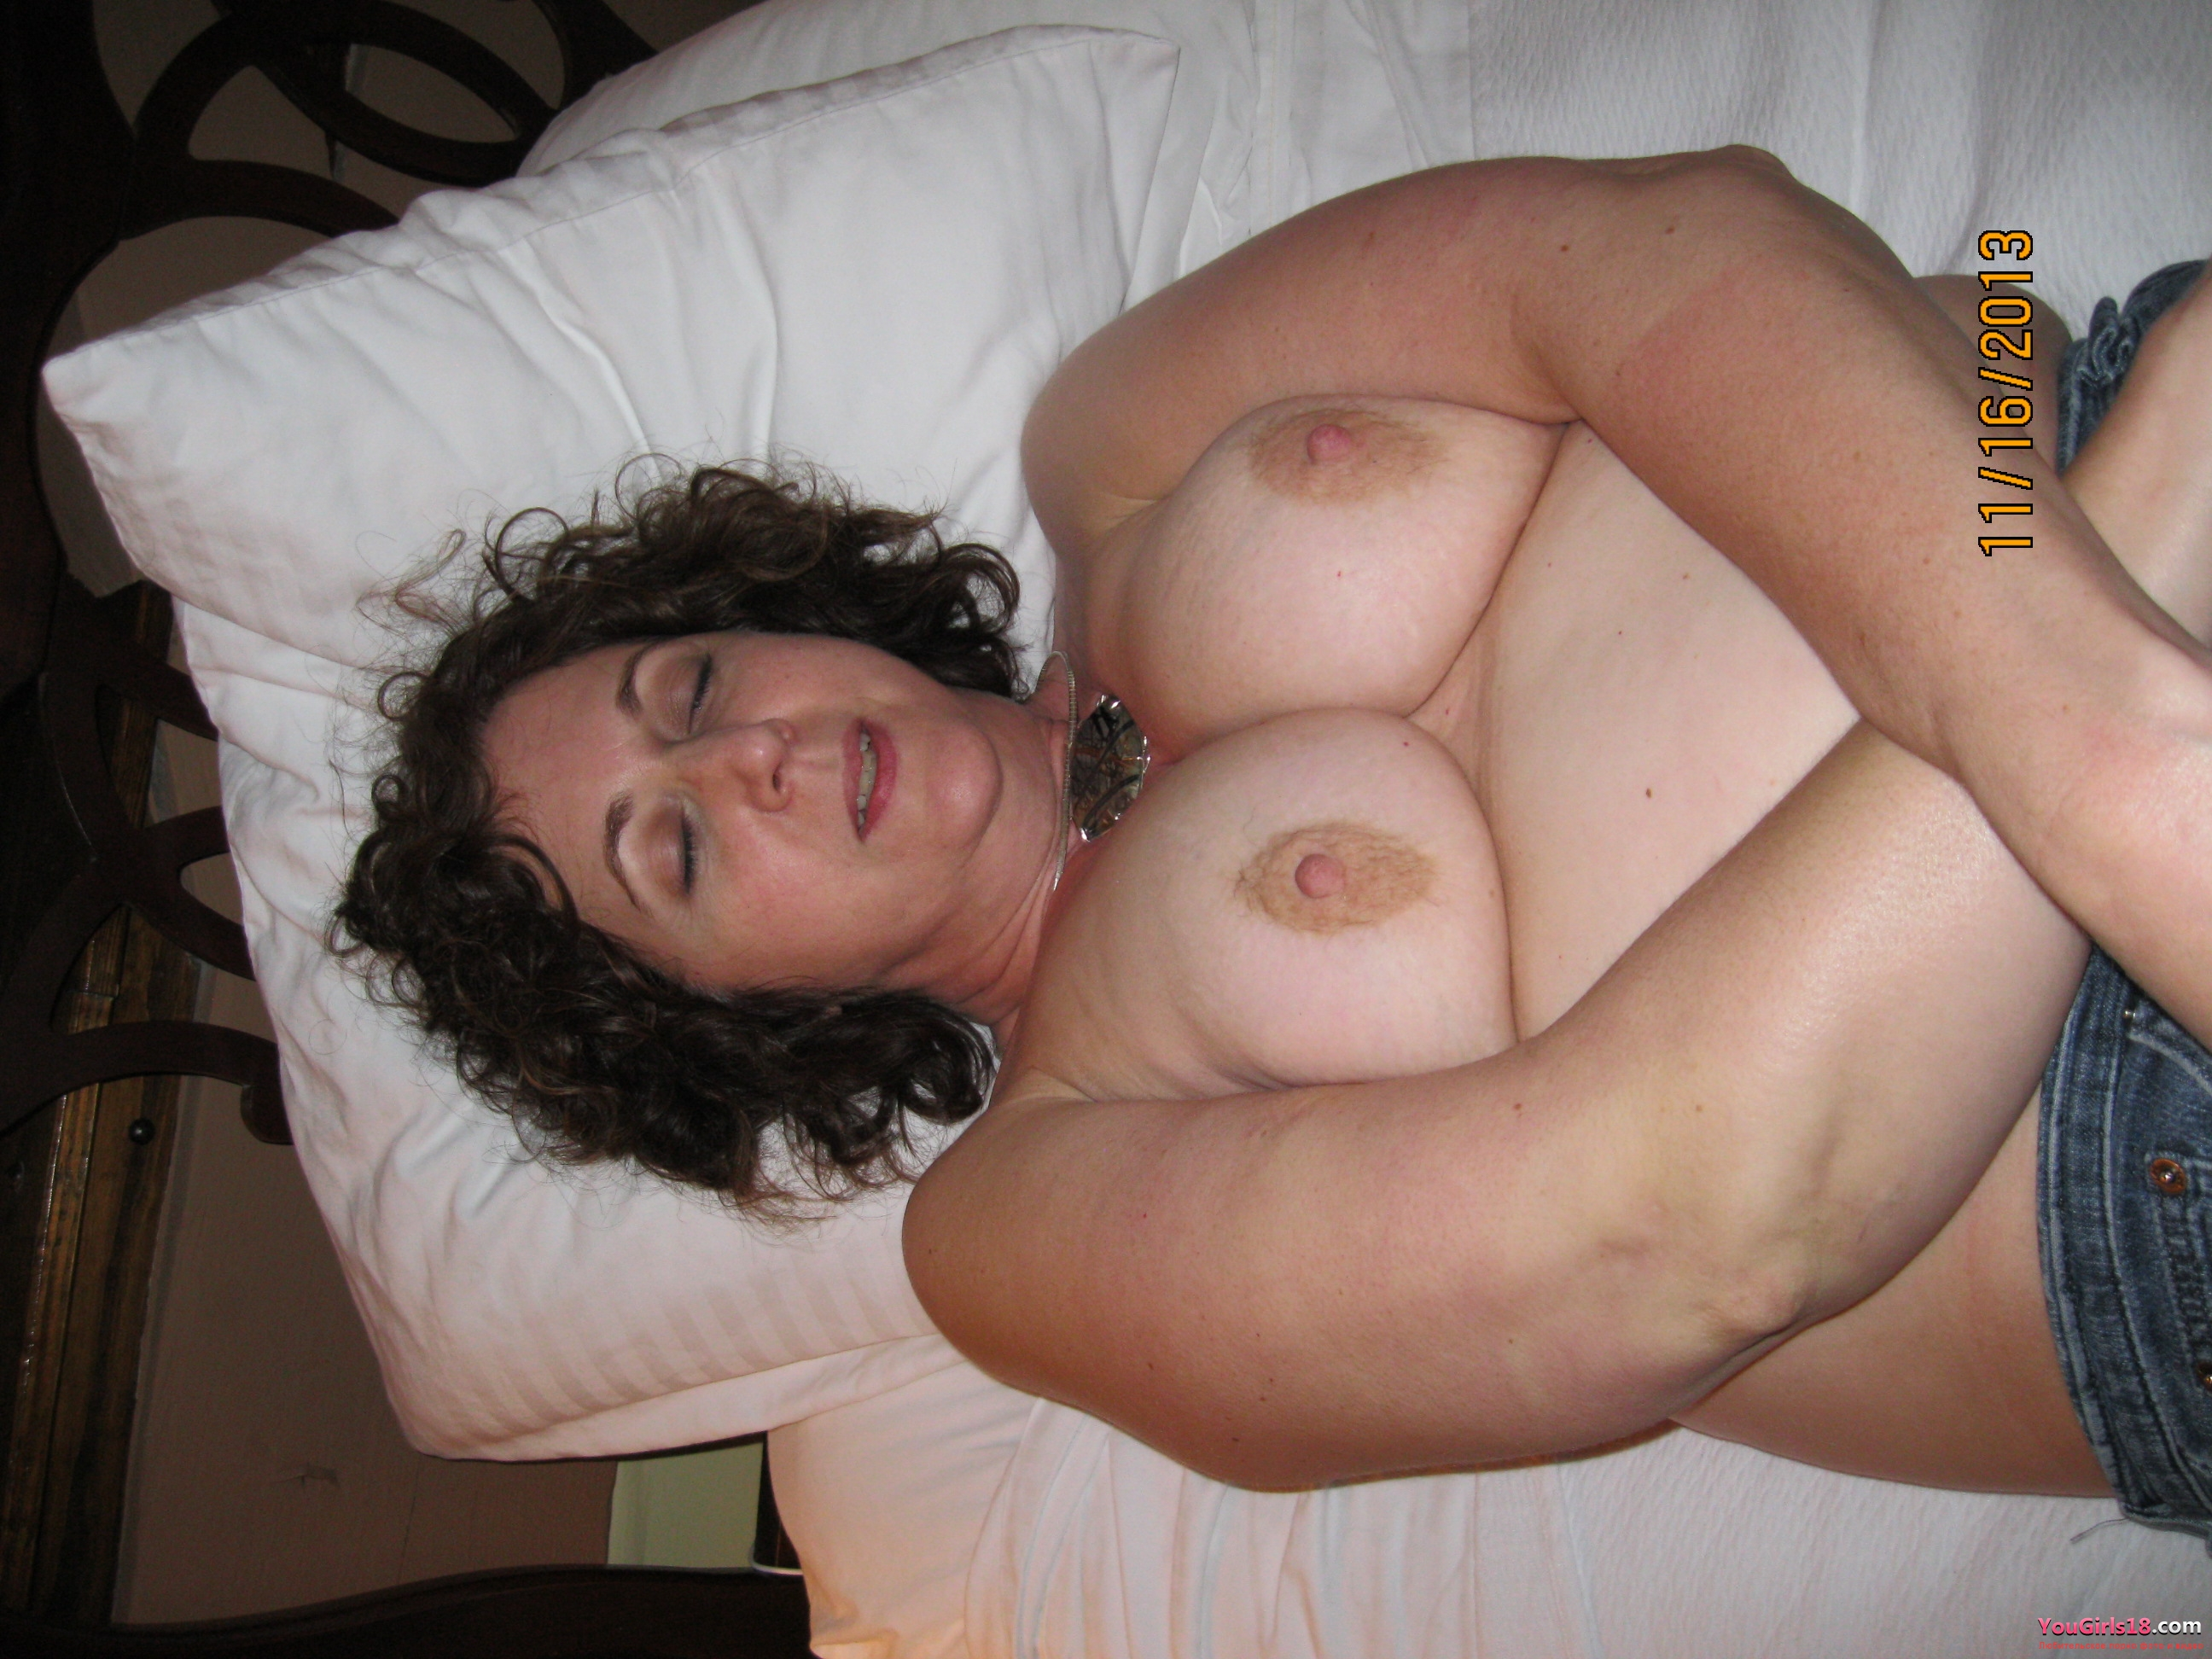 Amateur voyeur wife pics from maine swingers